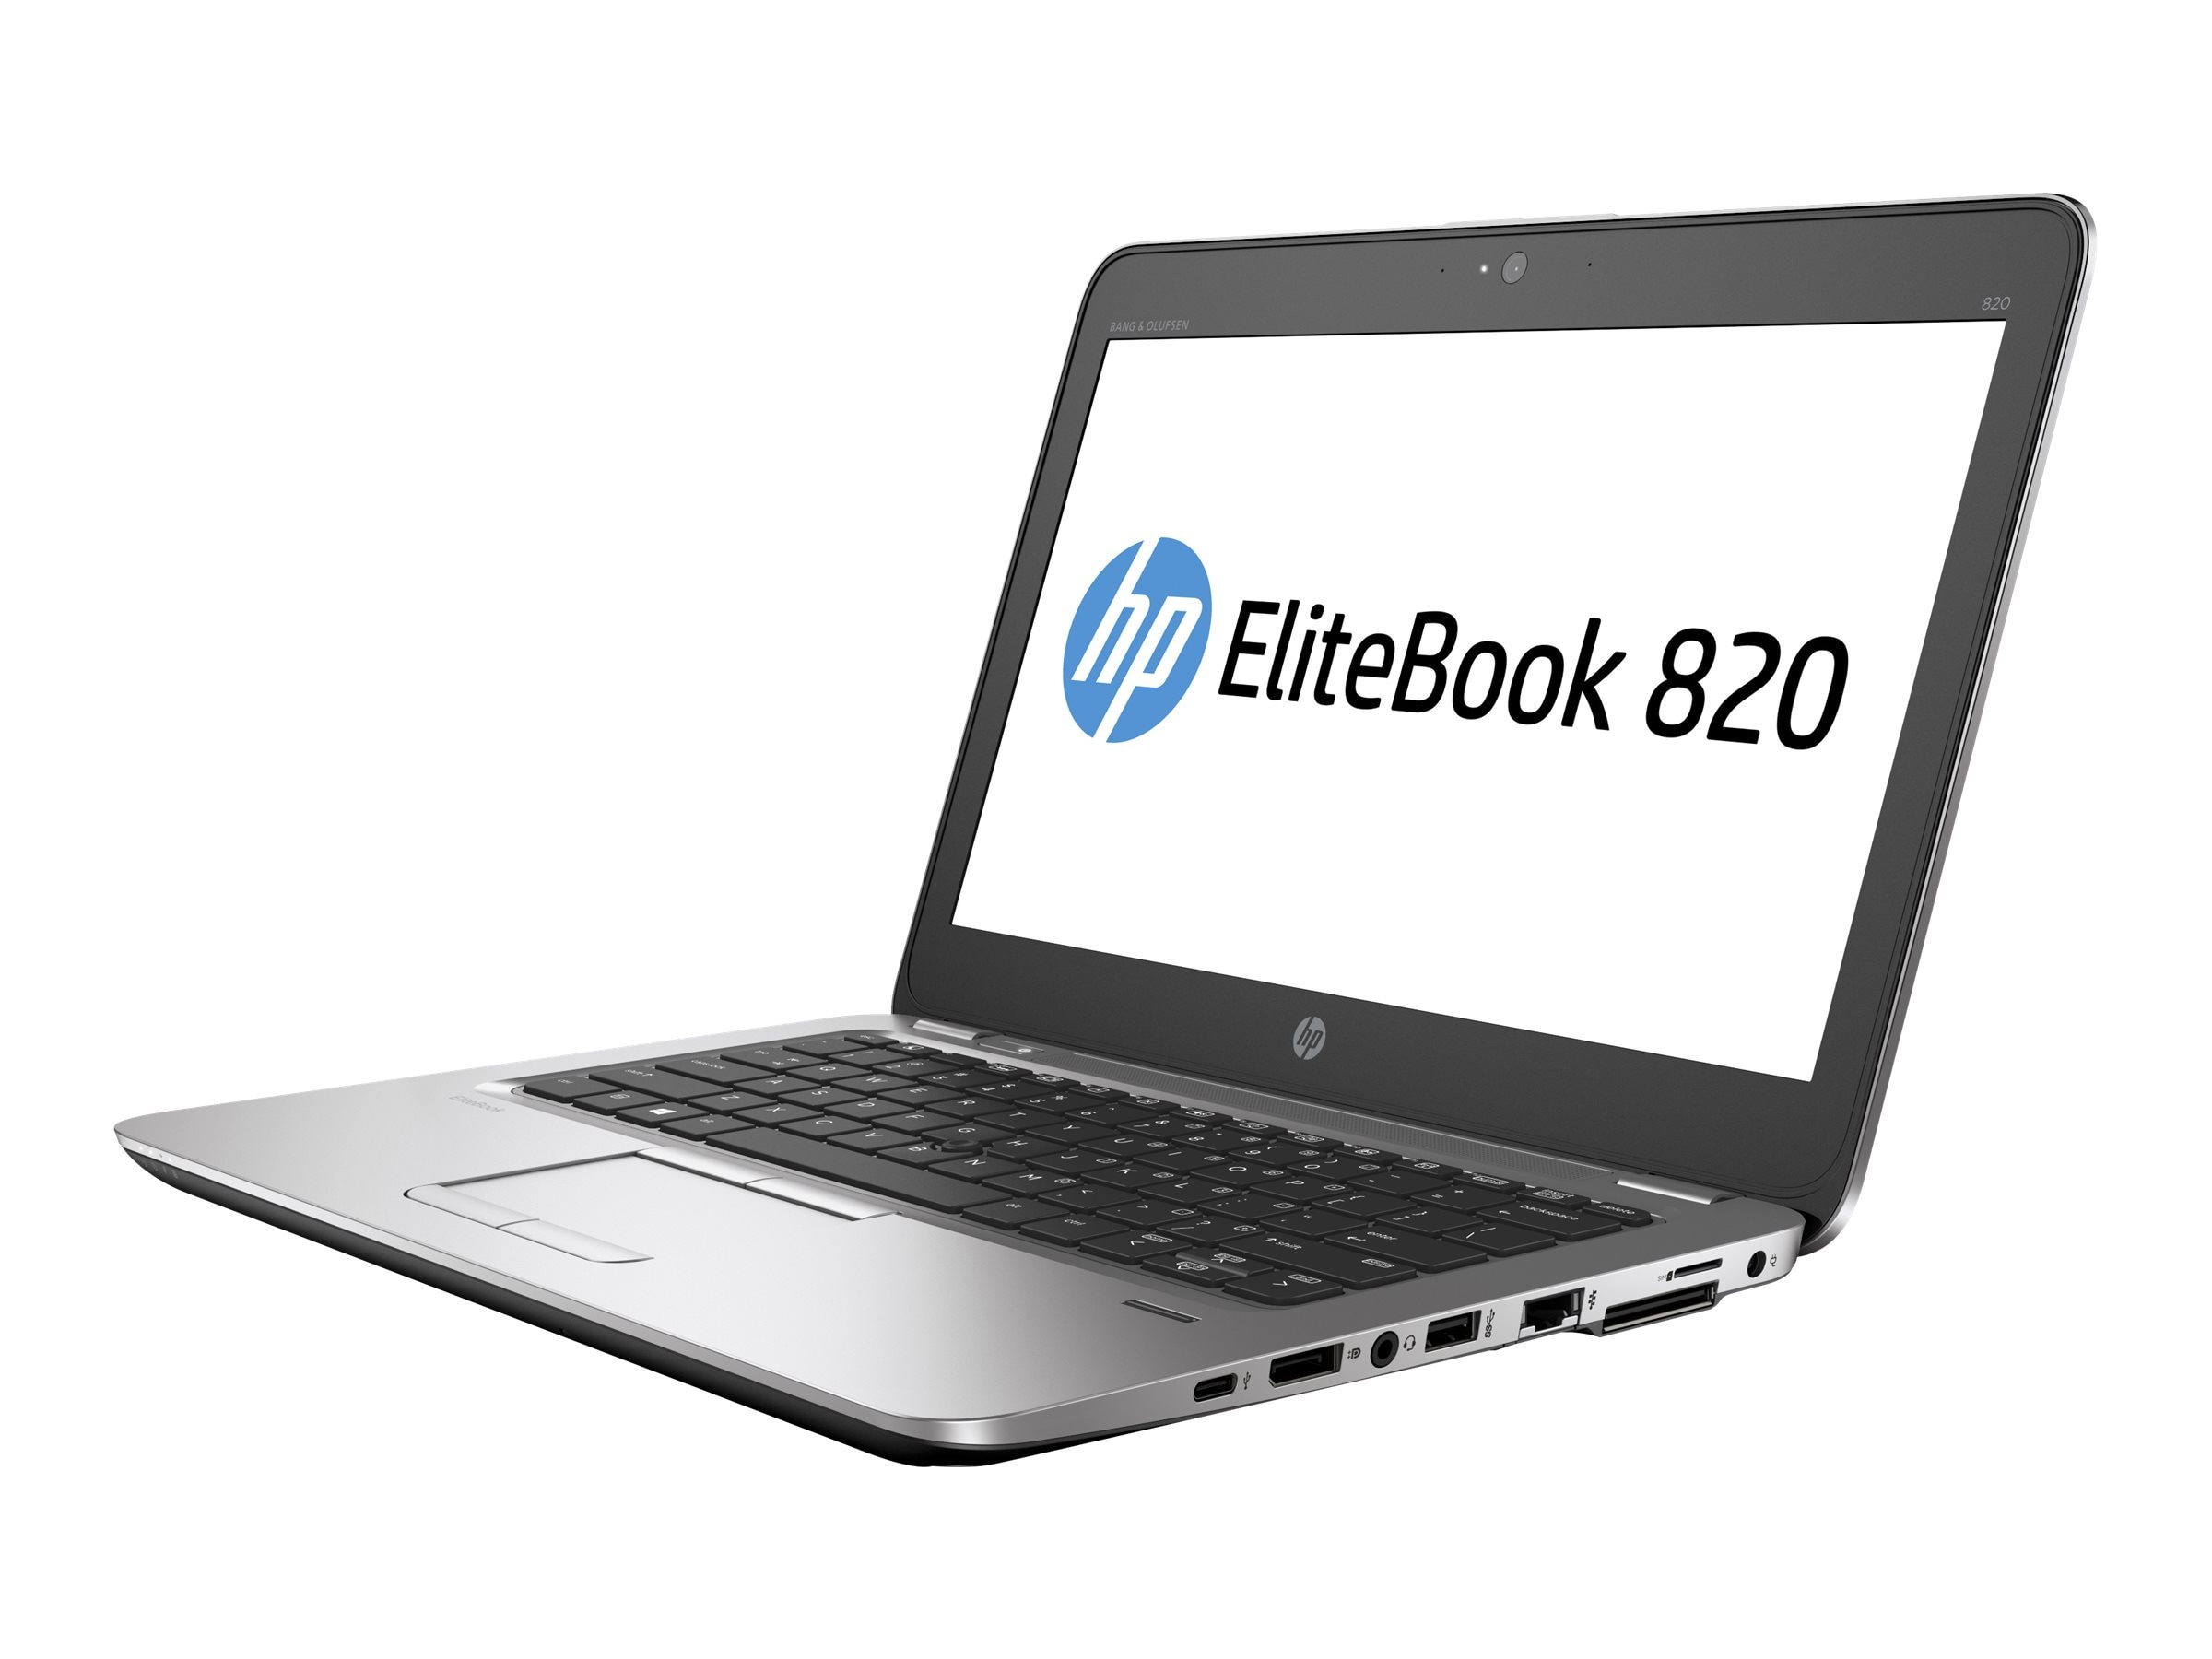 HP Smart Buy EliteBook 820 G3 Core i5-6200U 2.3GHz 8GB 256GB SSD ac abgn BT FR WC 3C 12.5 HD W7P64-W10, V1H00UT#ABA, 31000687, Notebooks